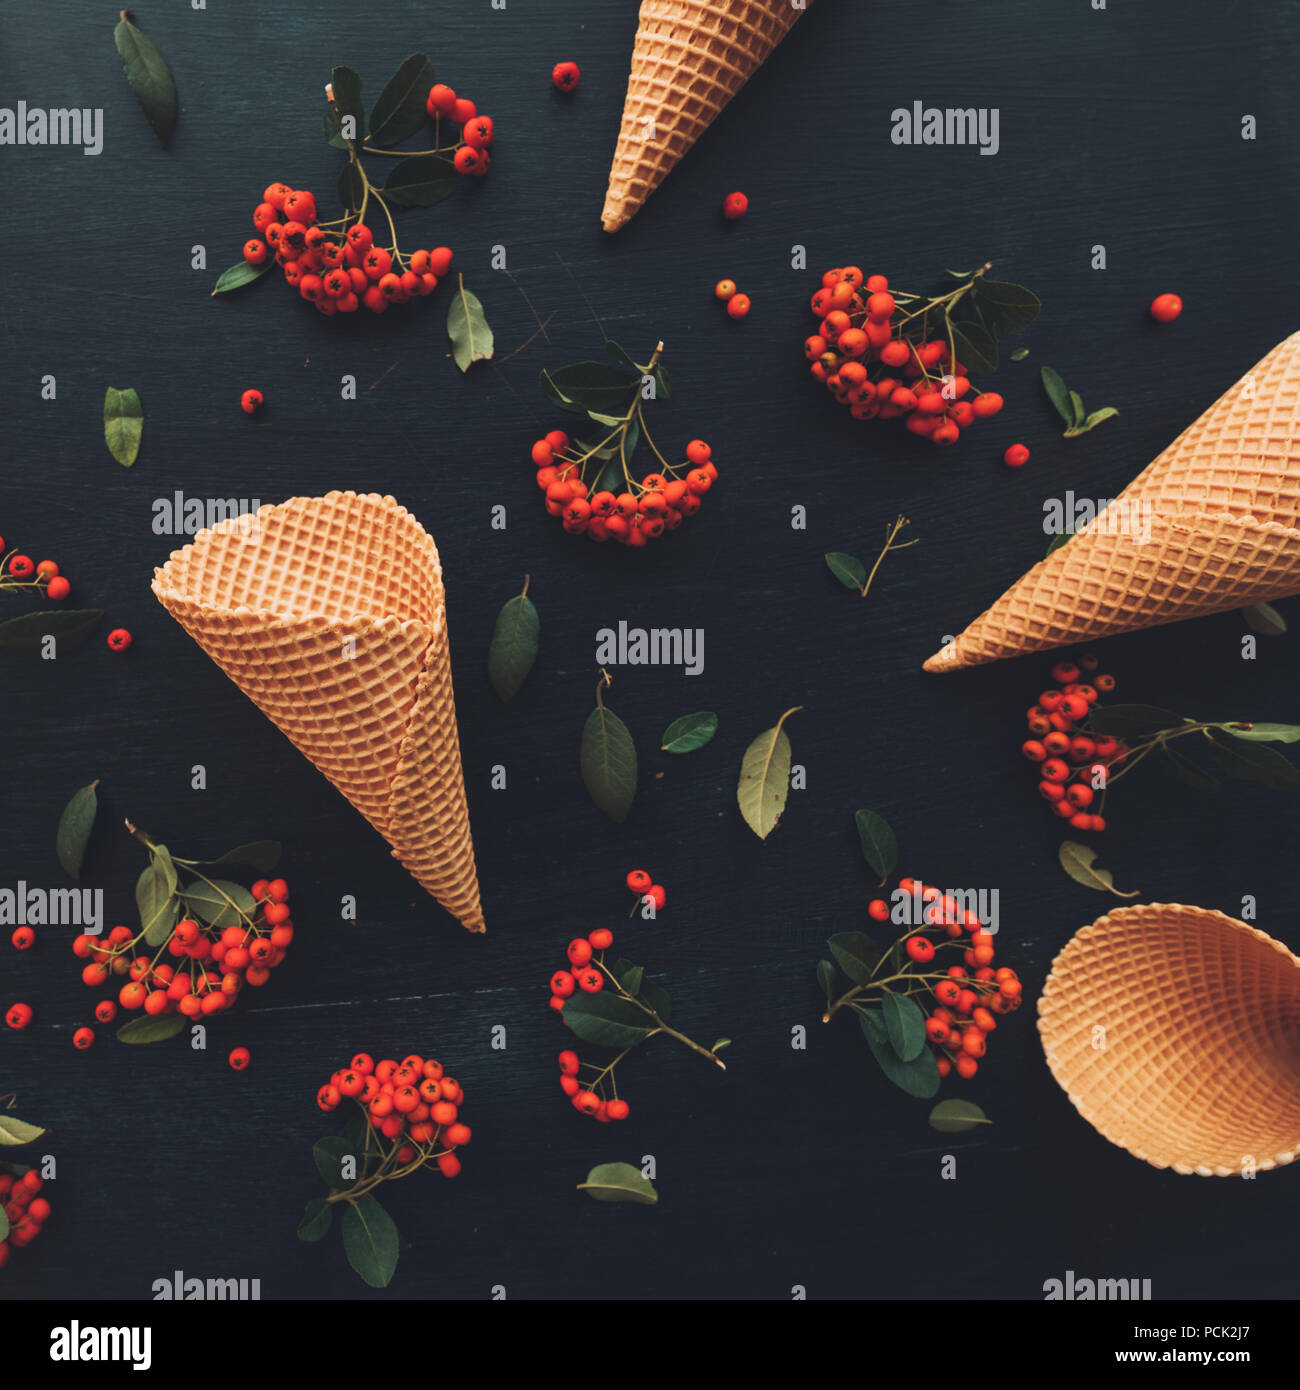 Waffle ice cream cone flat lay top view on dark black wooden background decorated with wild berry fruit arrangement - Stock Image